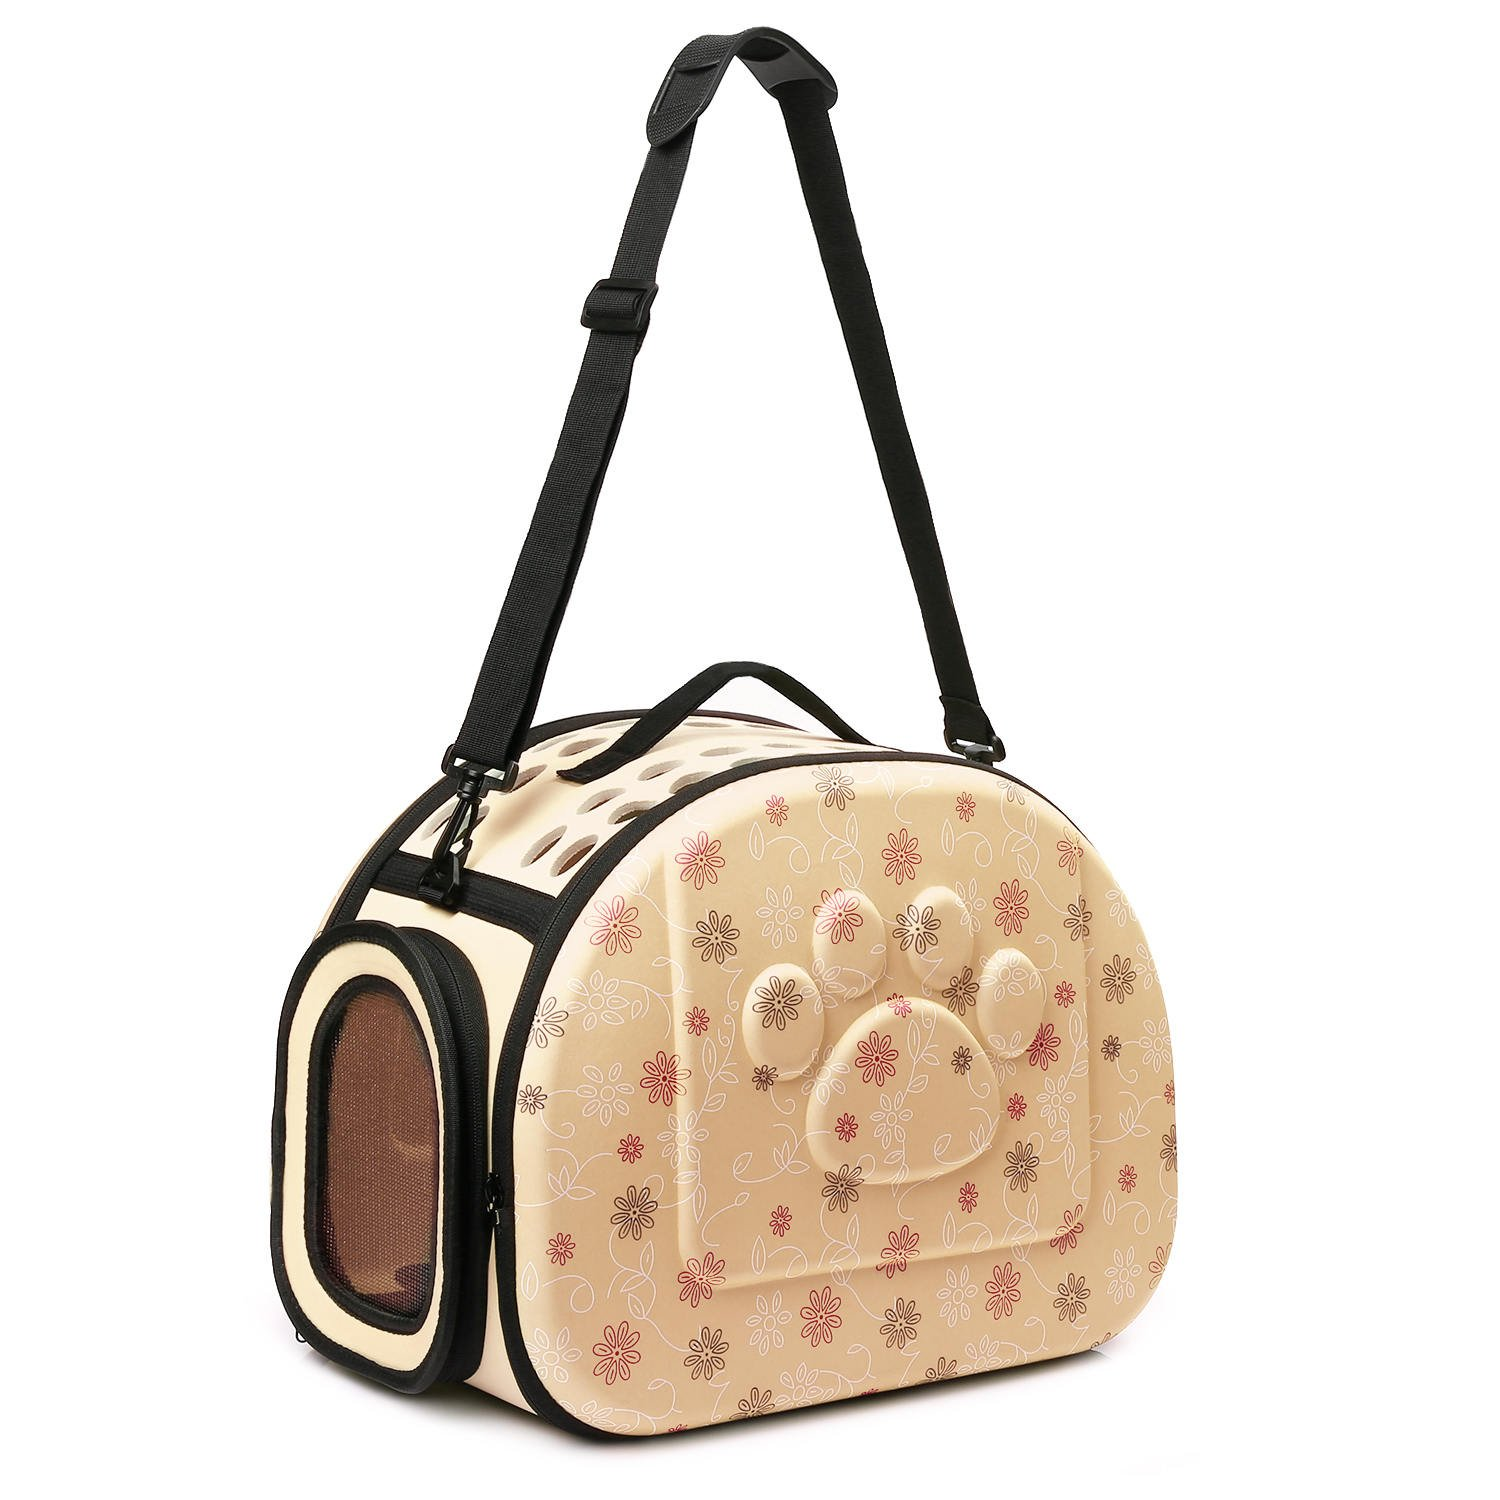 CORALTEA EVA Cute Portable Collapsible for Pets of Medium Size Cats & Dogs Airline Approved Outdoor Under Seat Travel Pet Carrier Soft Sided Puppy Bag (Champagne)